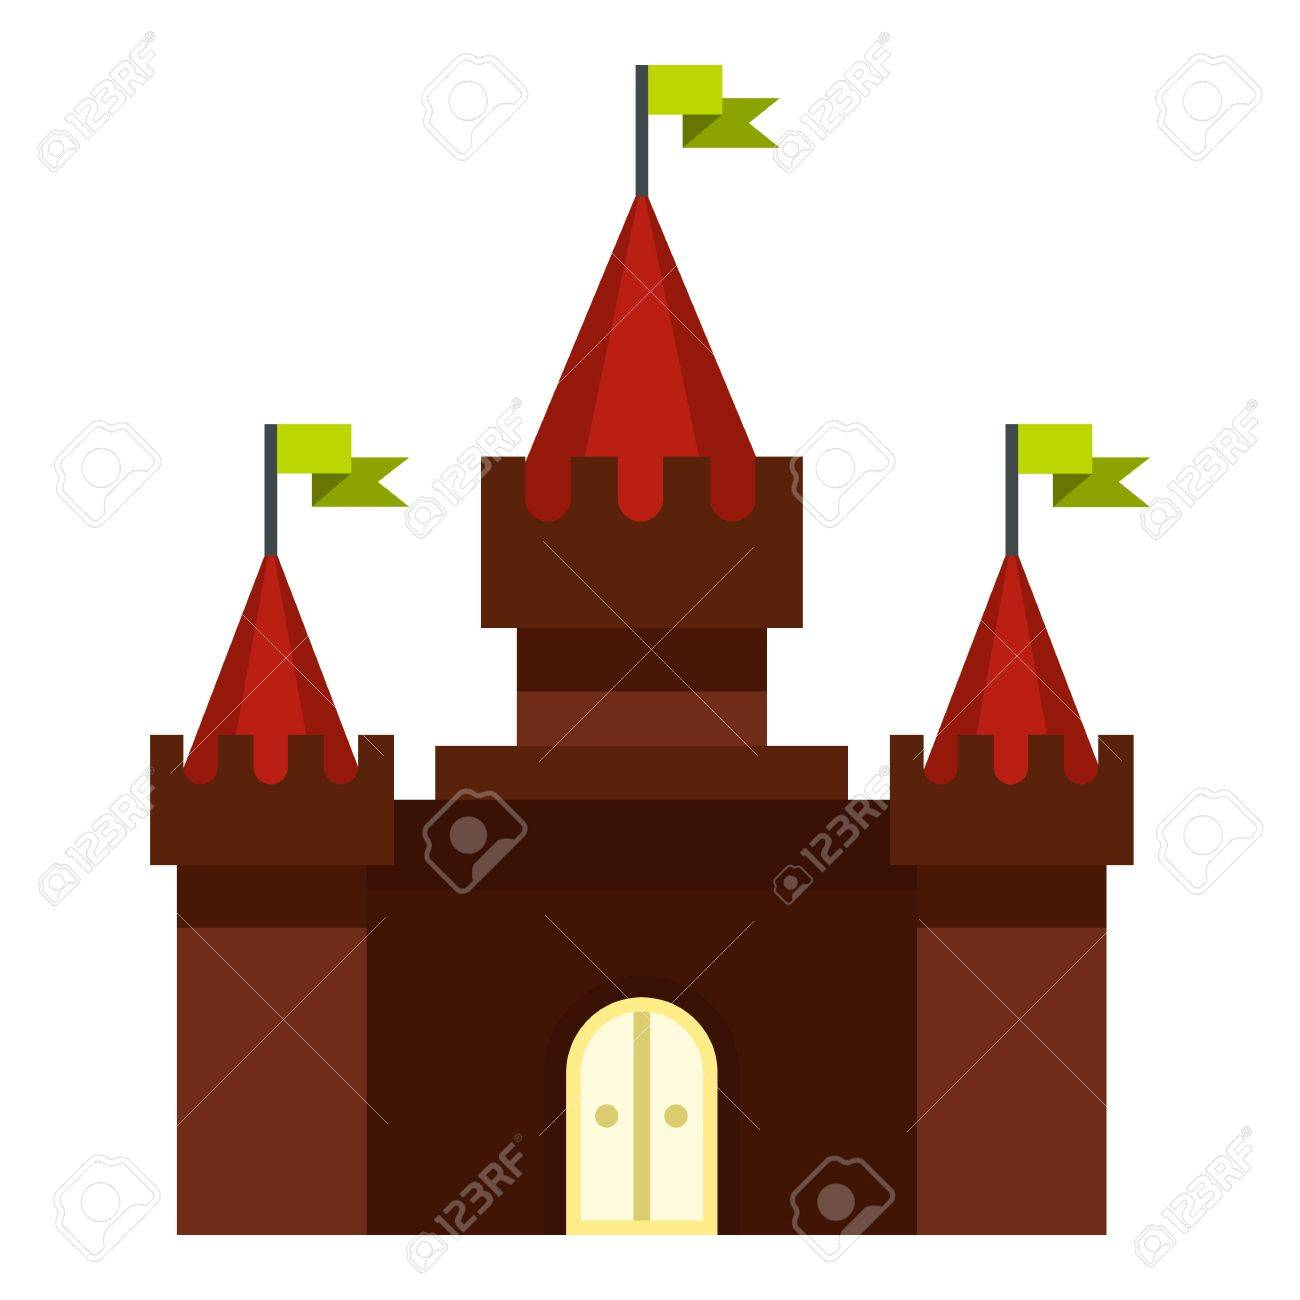 medieval castle icon flat illustration of castle vector icon for web design stock vector